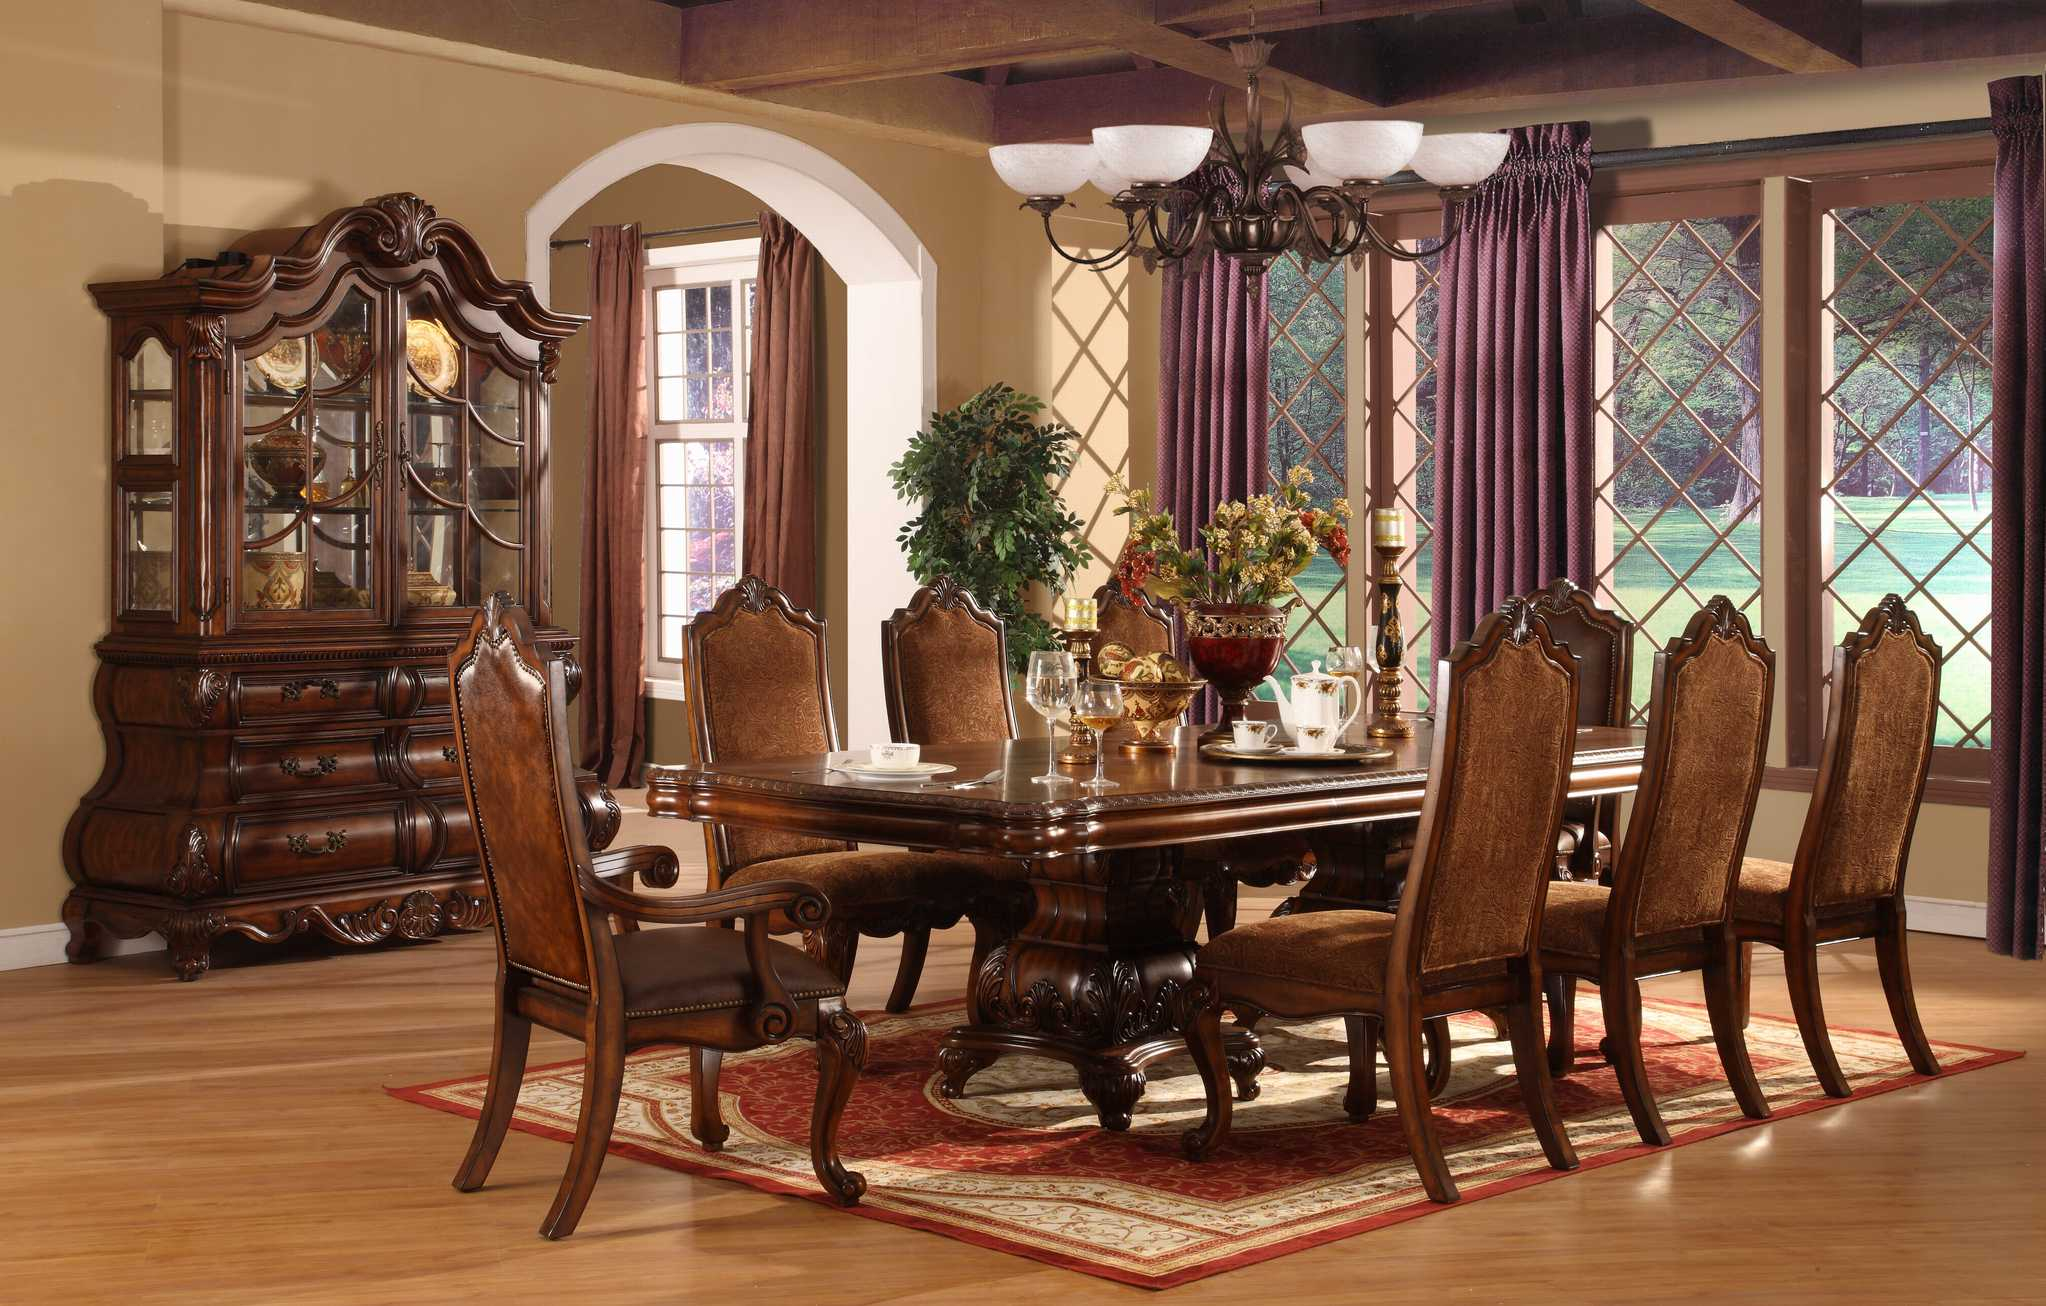 Perfect Formal Dining Room Sets For 8 Homesfeed throughout Formal Luxury Living Room Sets